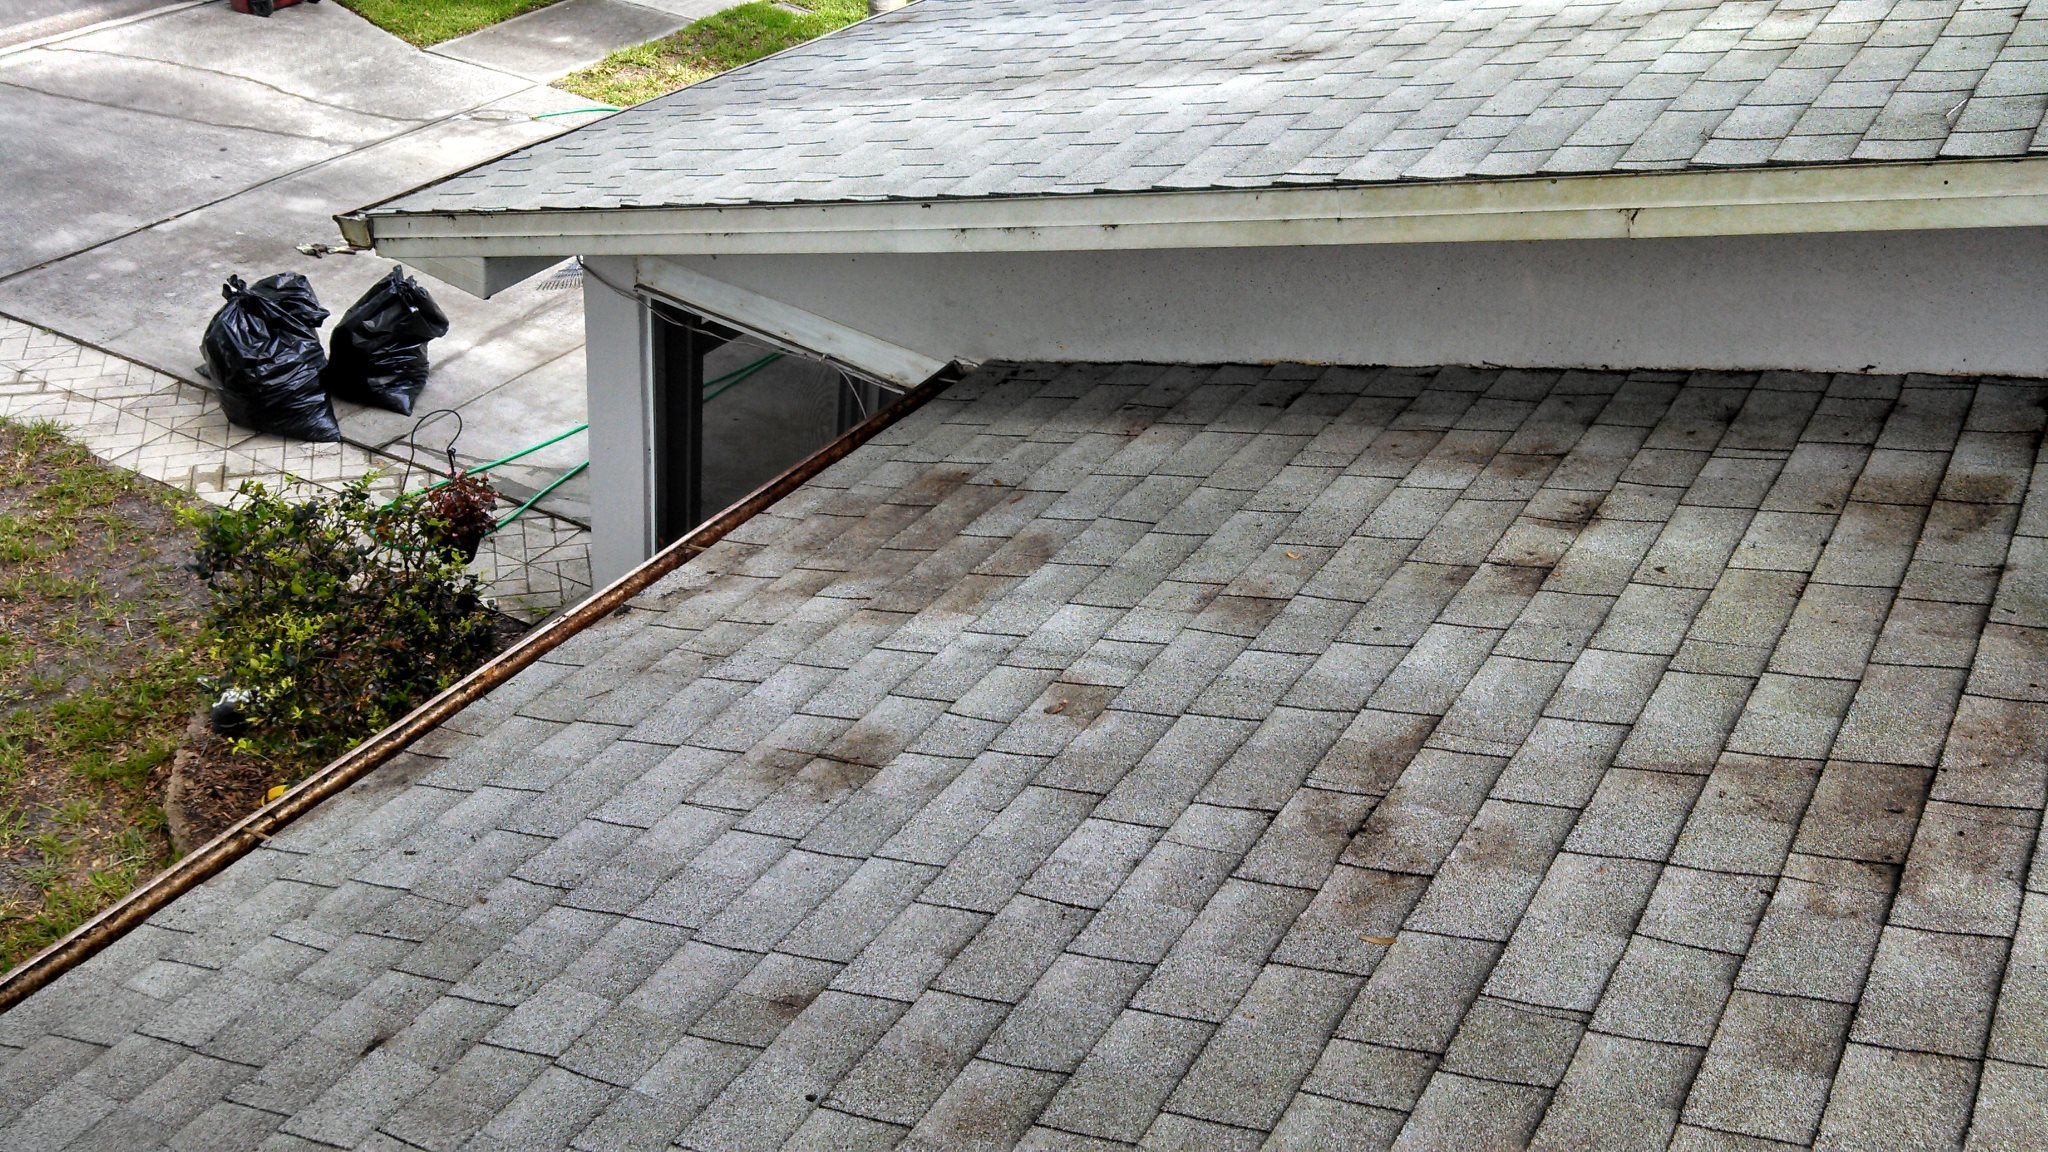 Average Price To Clean Roof Gutters Average Price To Clean